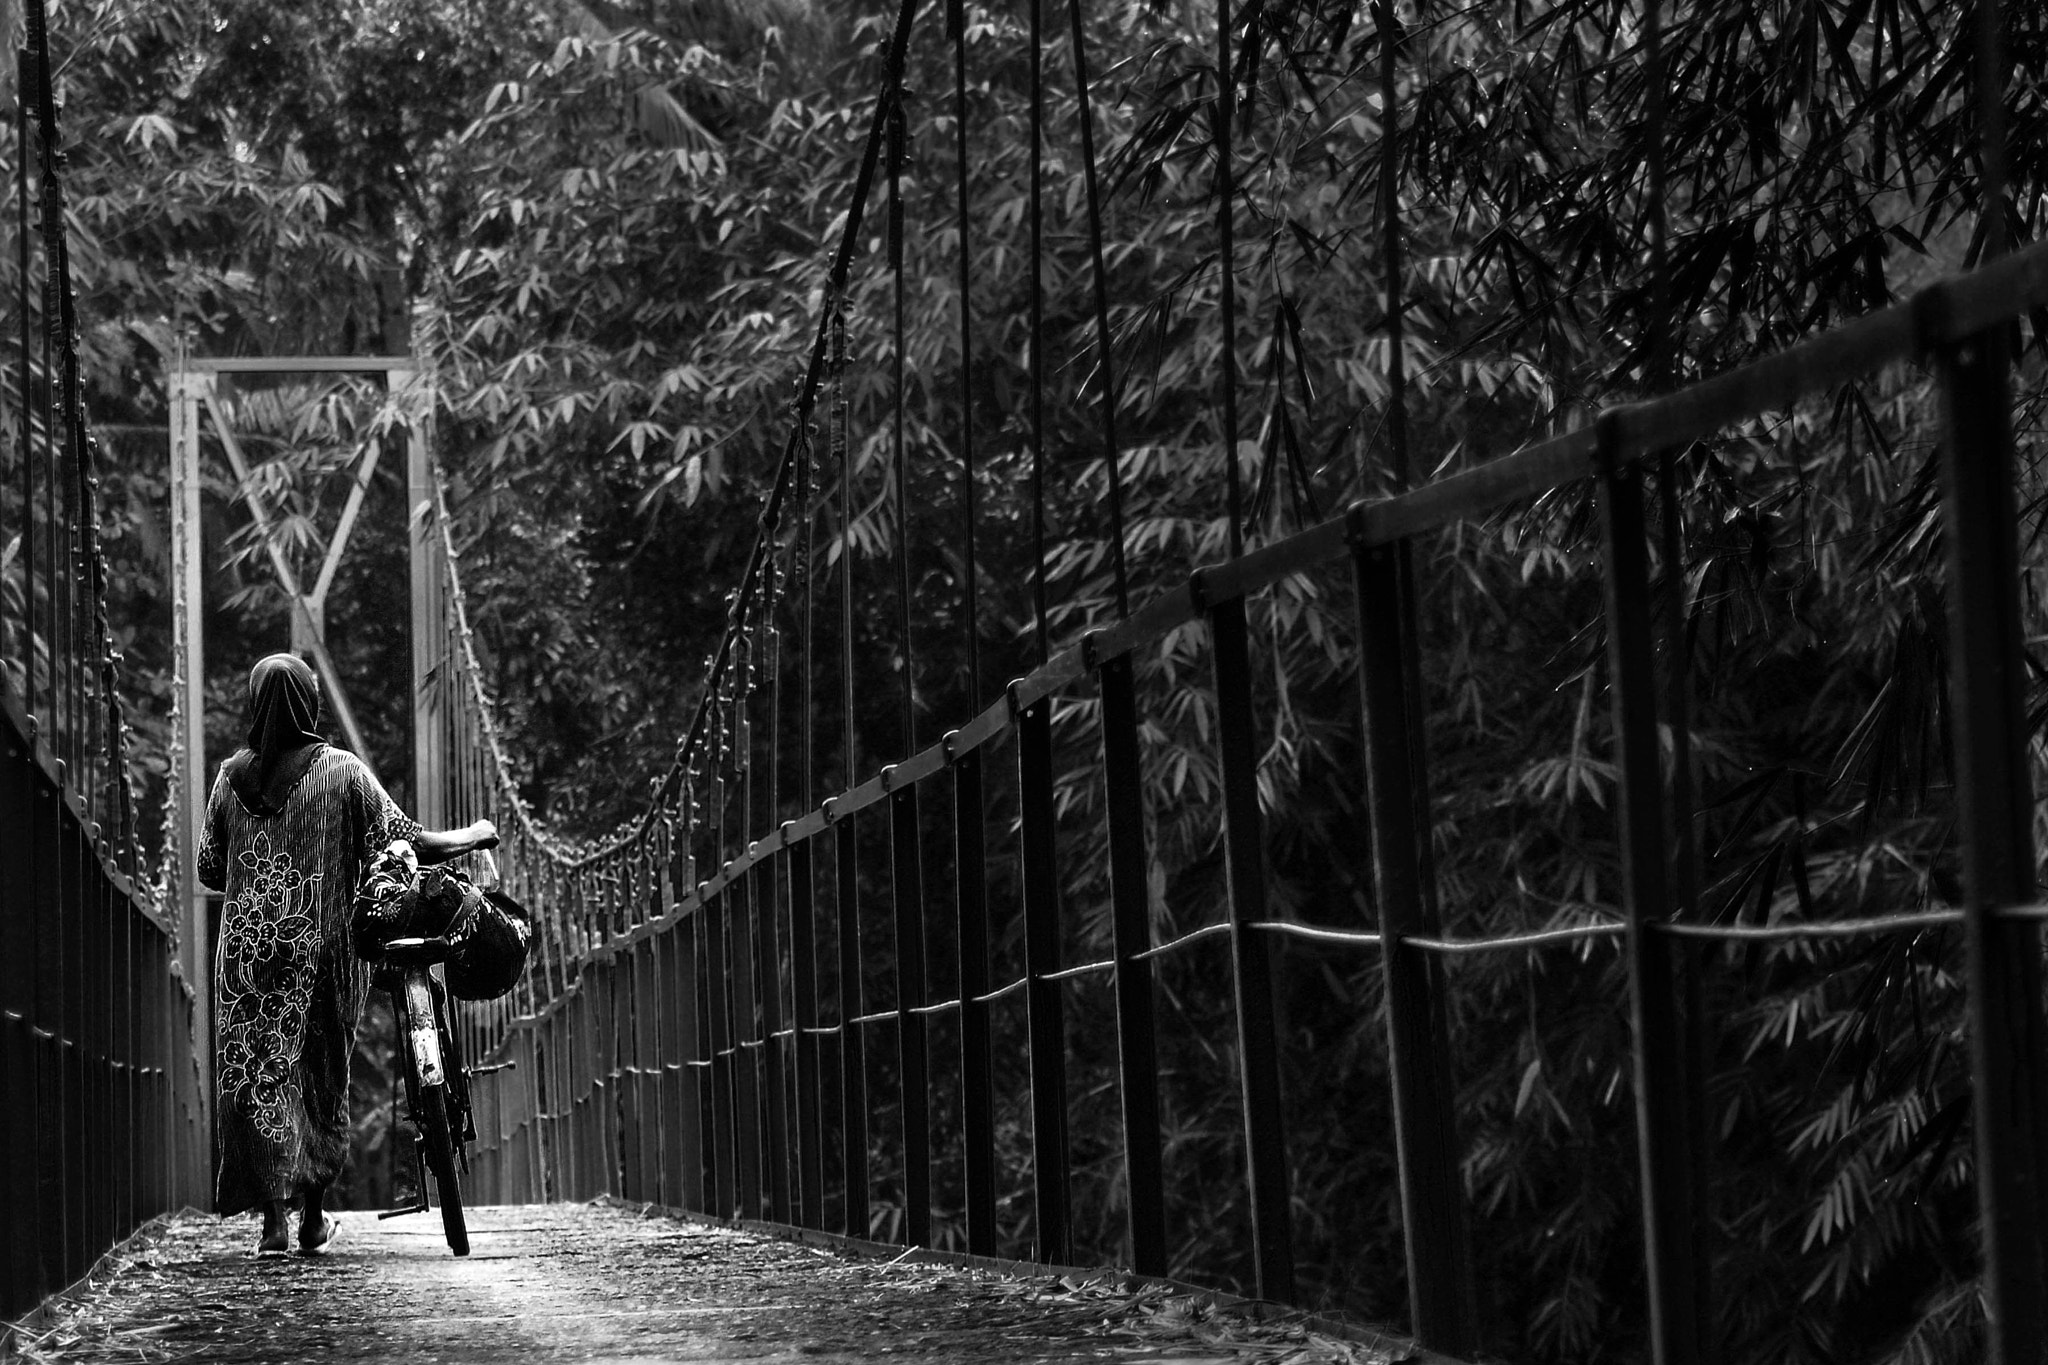 Photograph on the way home by Patricius Hartono on 500px